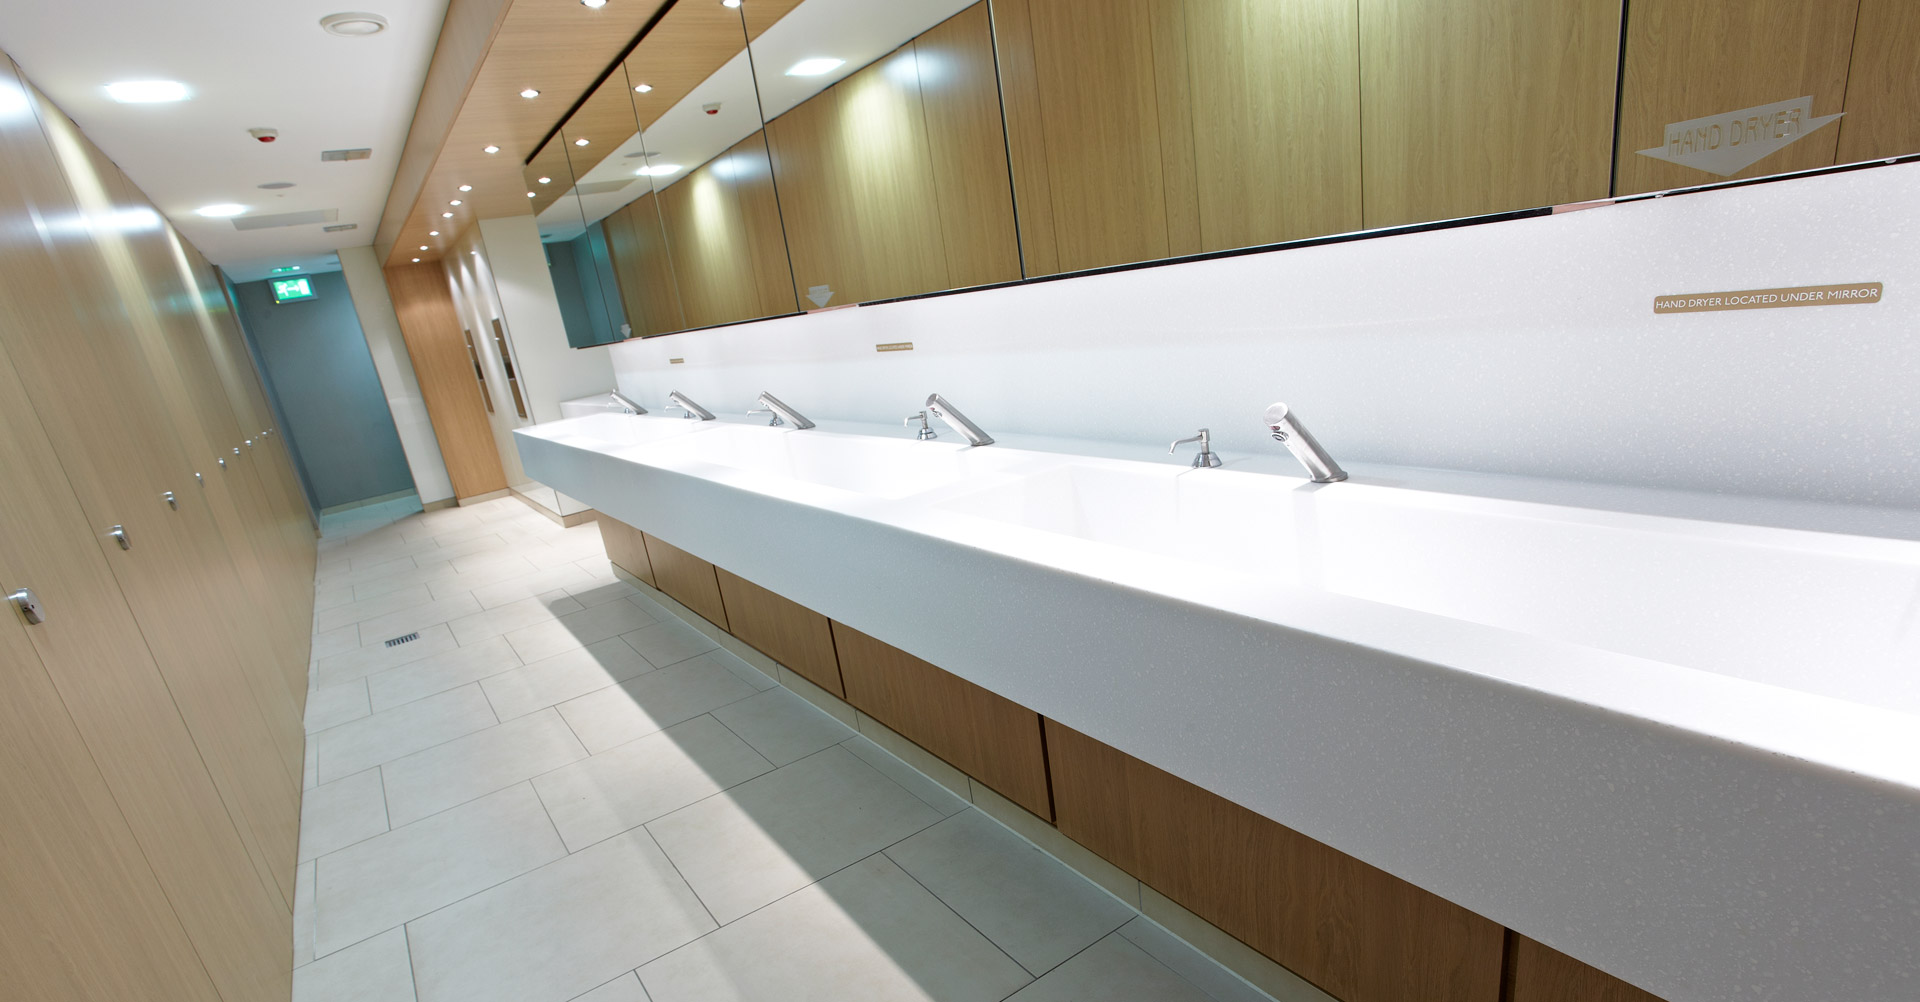 The sinks in the washroom